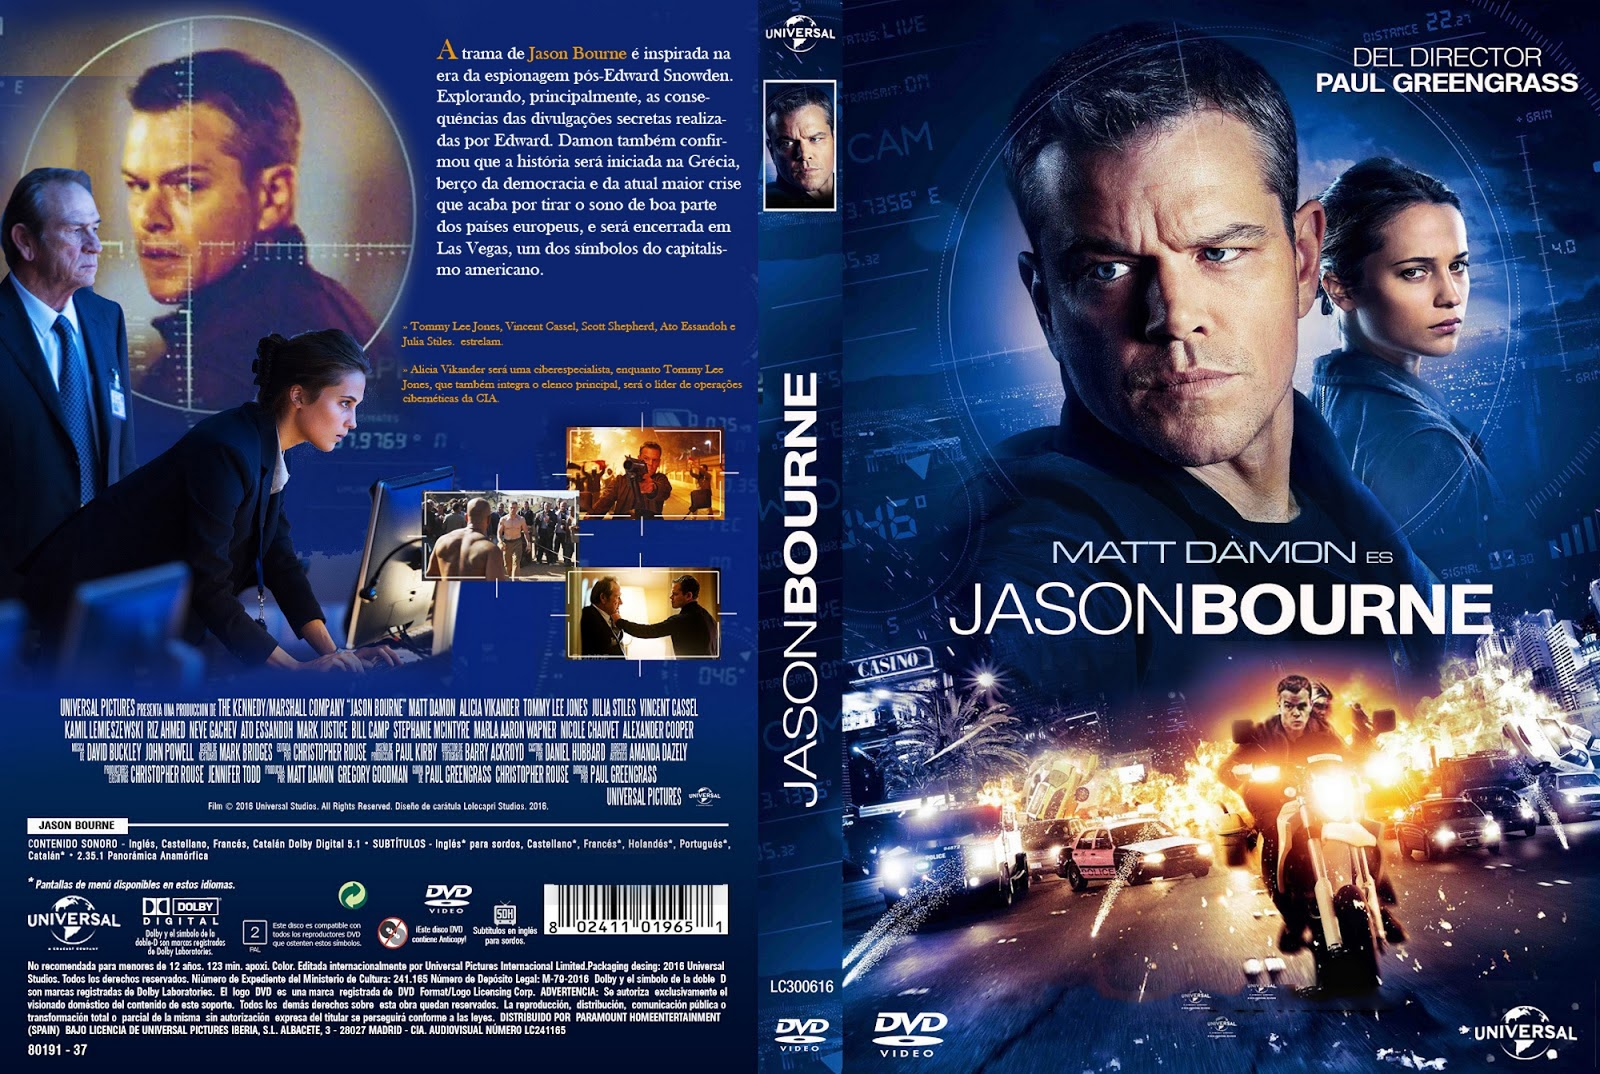 Download Jason Bourne DVD-R Download Jason Bourne DVD-R Jason 2BBourne 2B  2BCAPA 2B2